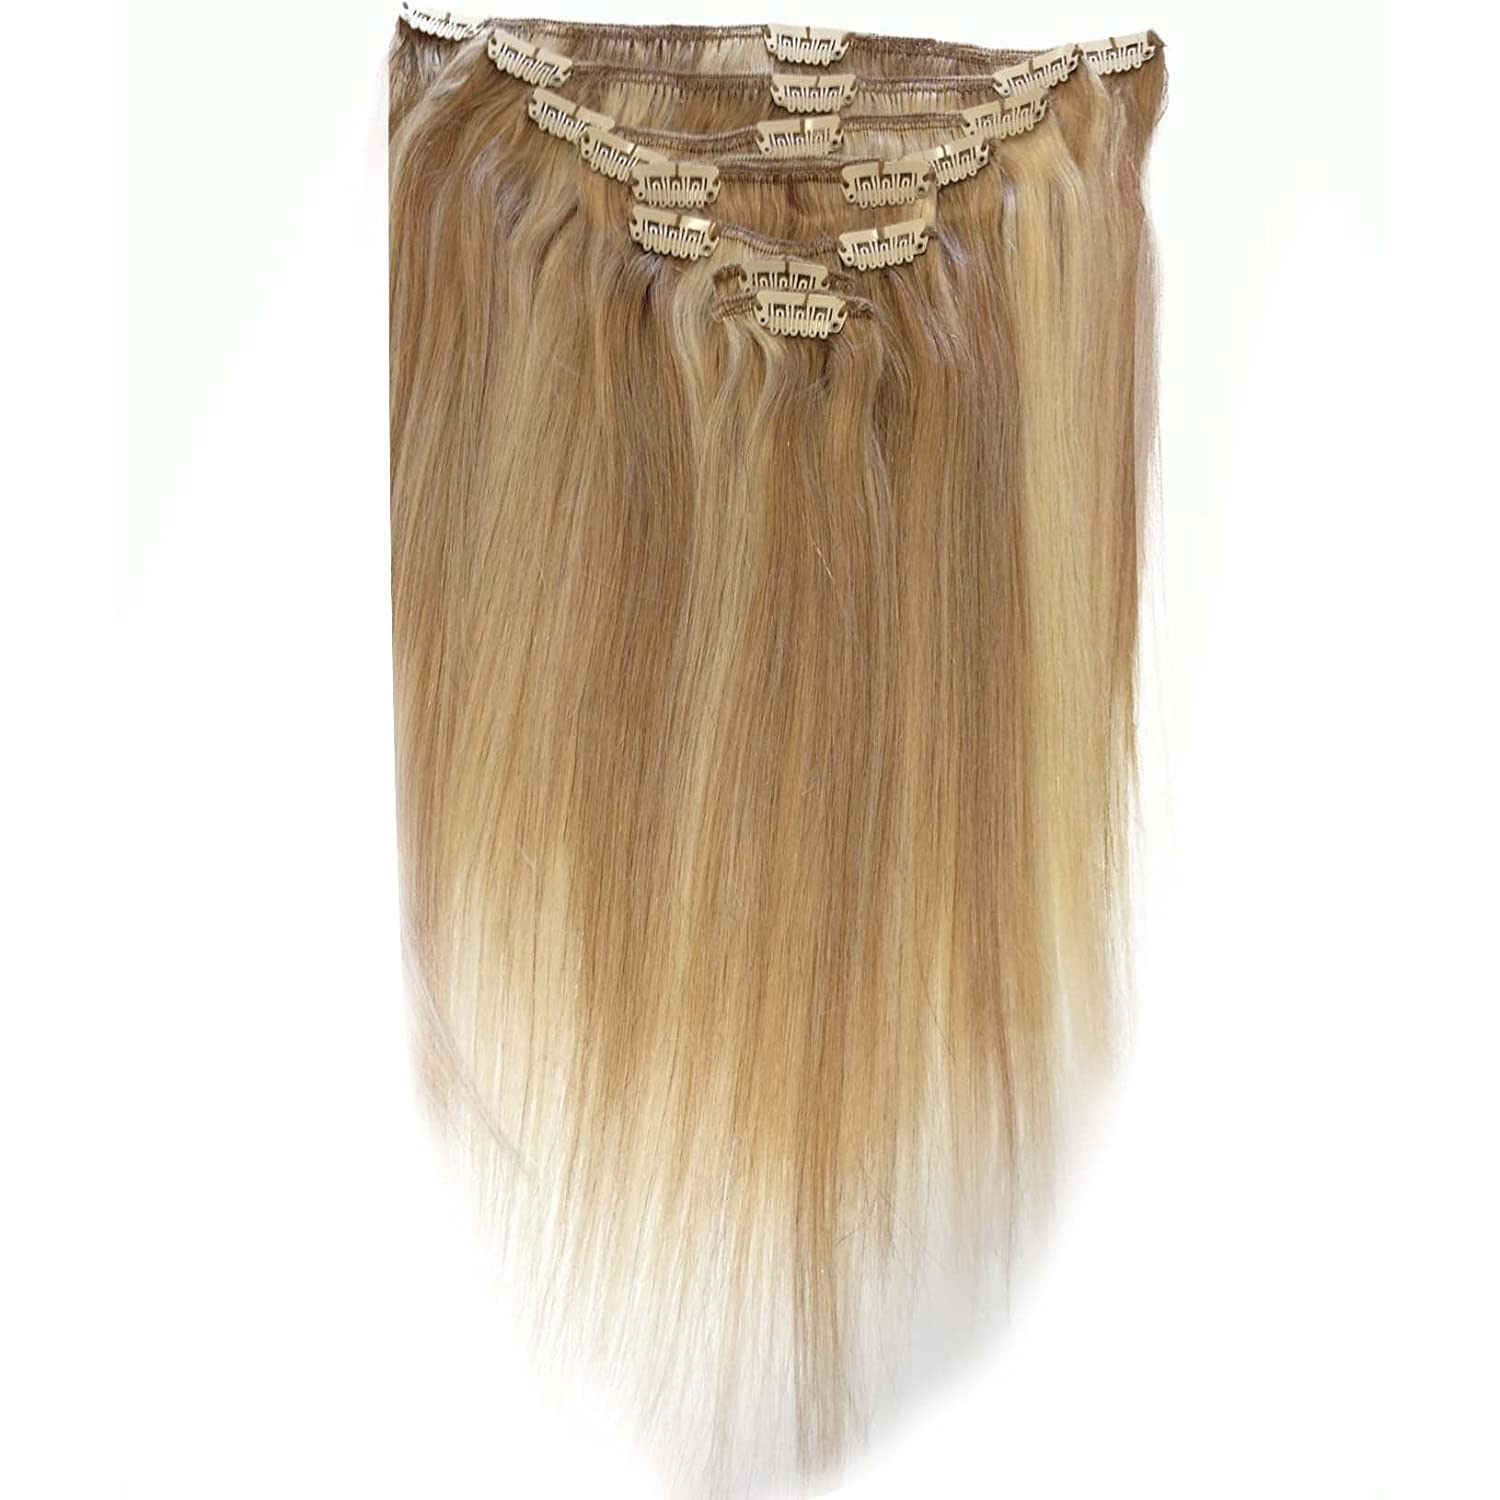 24 Inch Mixed Blonde 1822 Full Head Clip In Human Hair